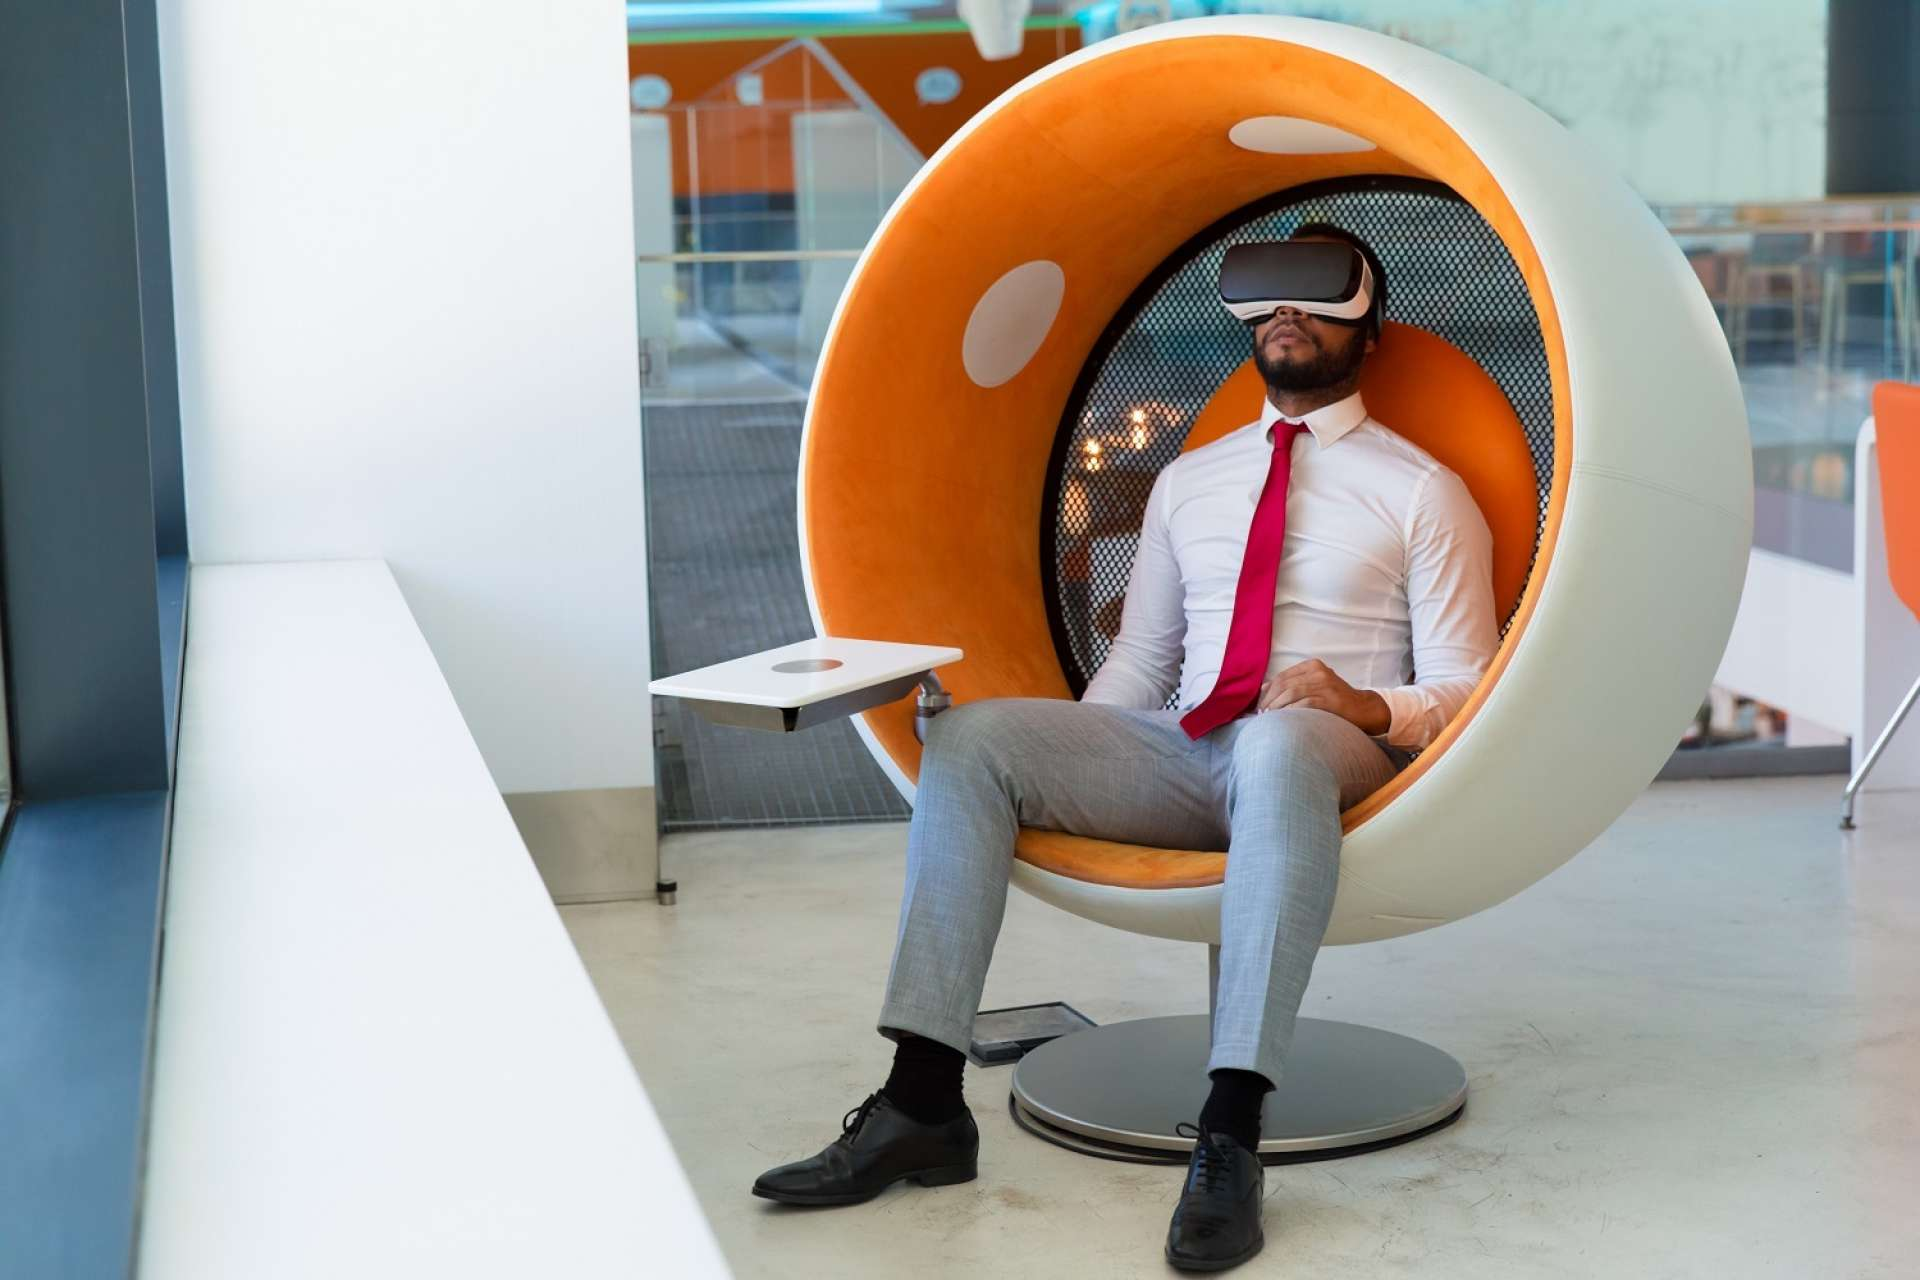 P2 ctouch peaceful businessman in VR headset small